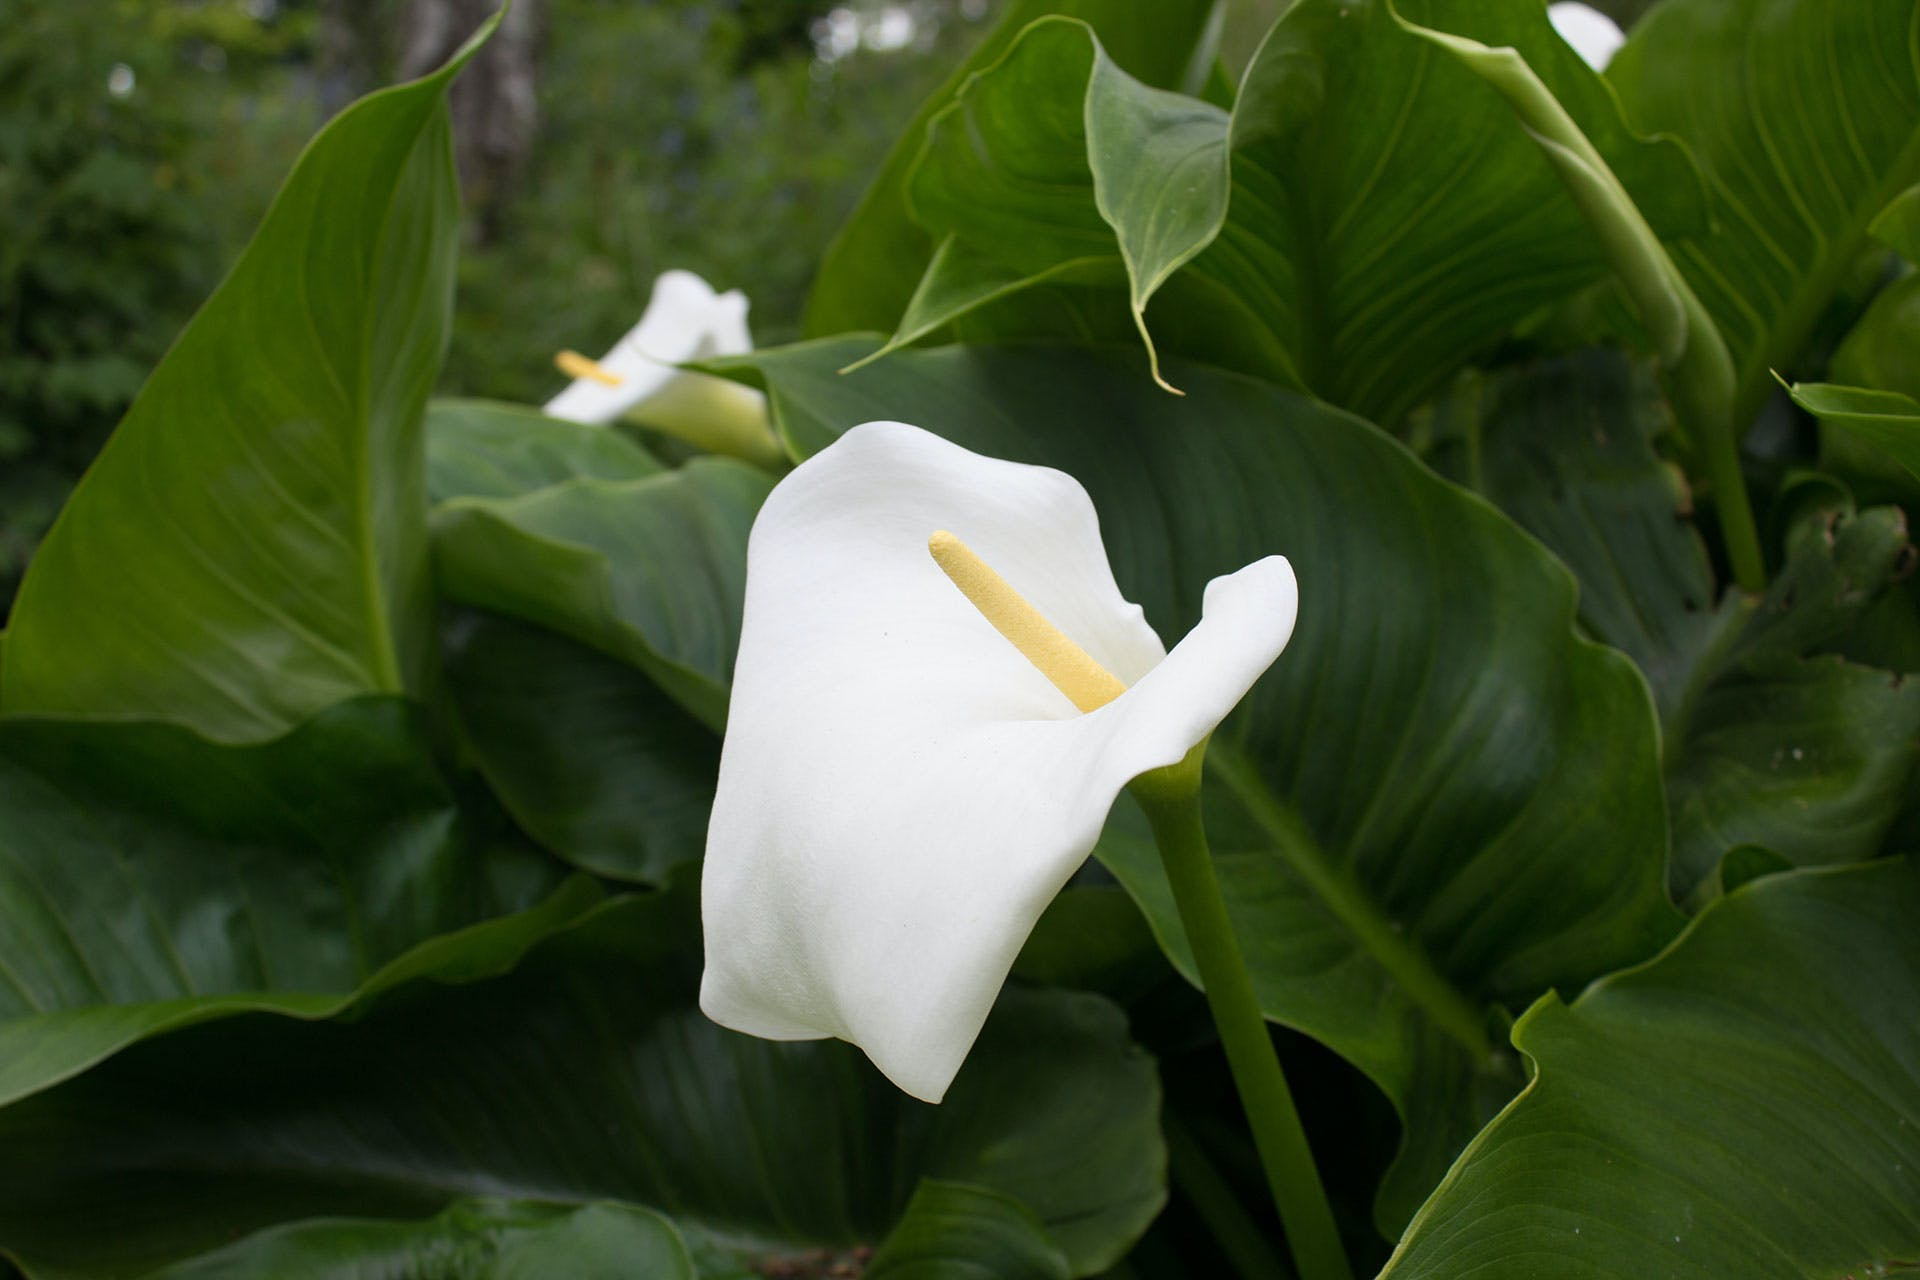 Close-up Photography of White Anthuruim Flower in Bloom